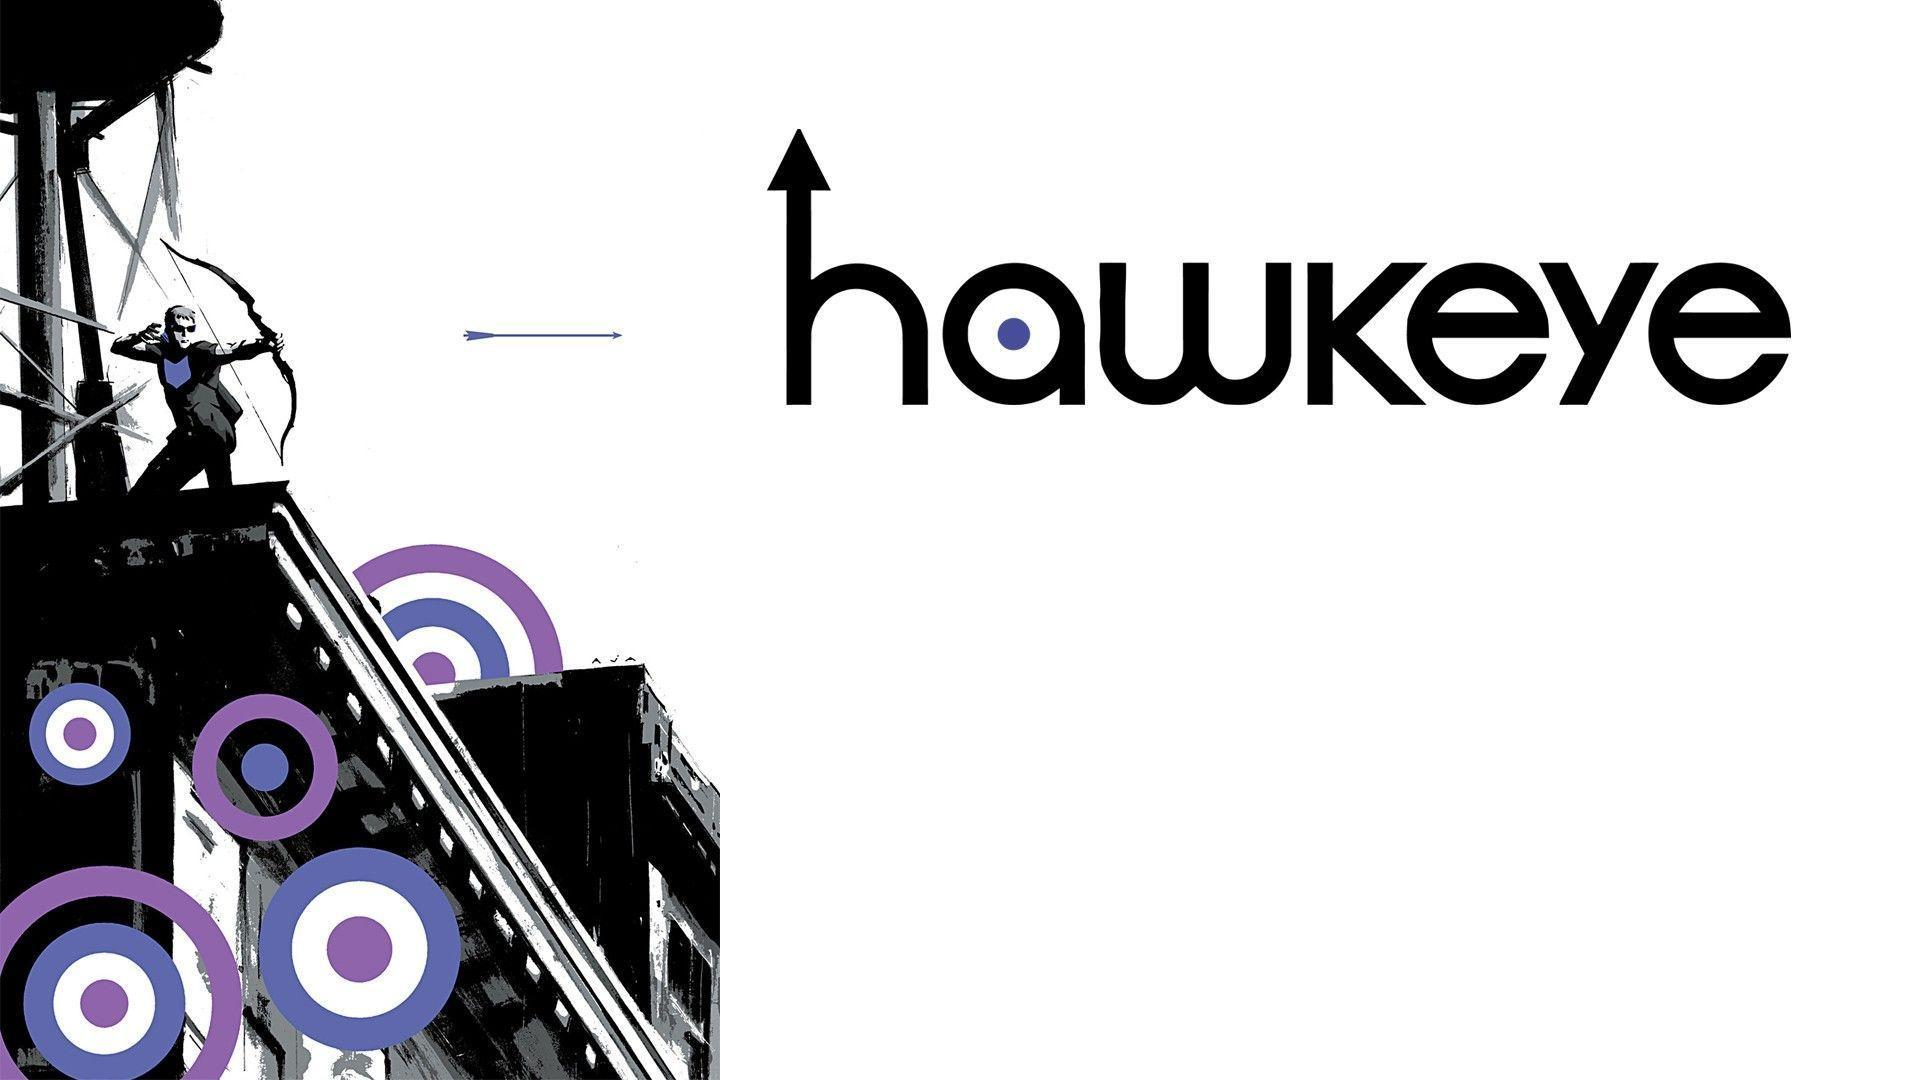 Hawkeye Computer Wallpapers, Desktop Backgrounds 1920x1080 Id: 408751